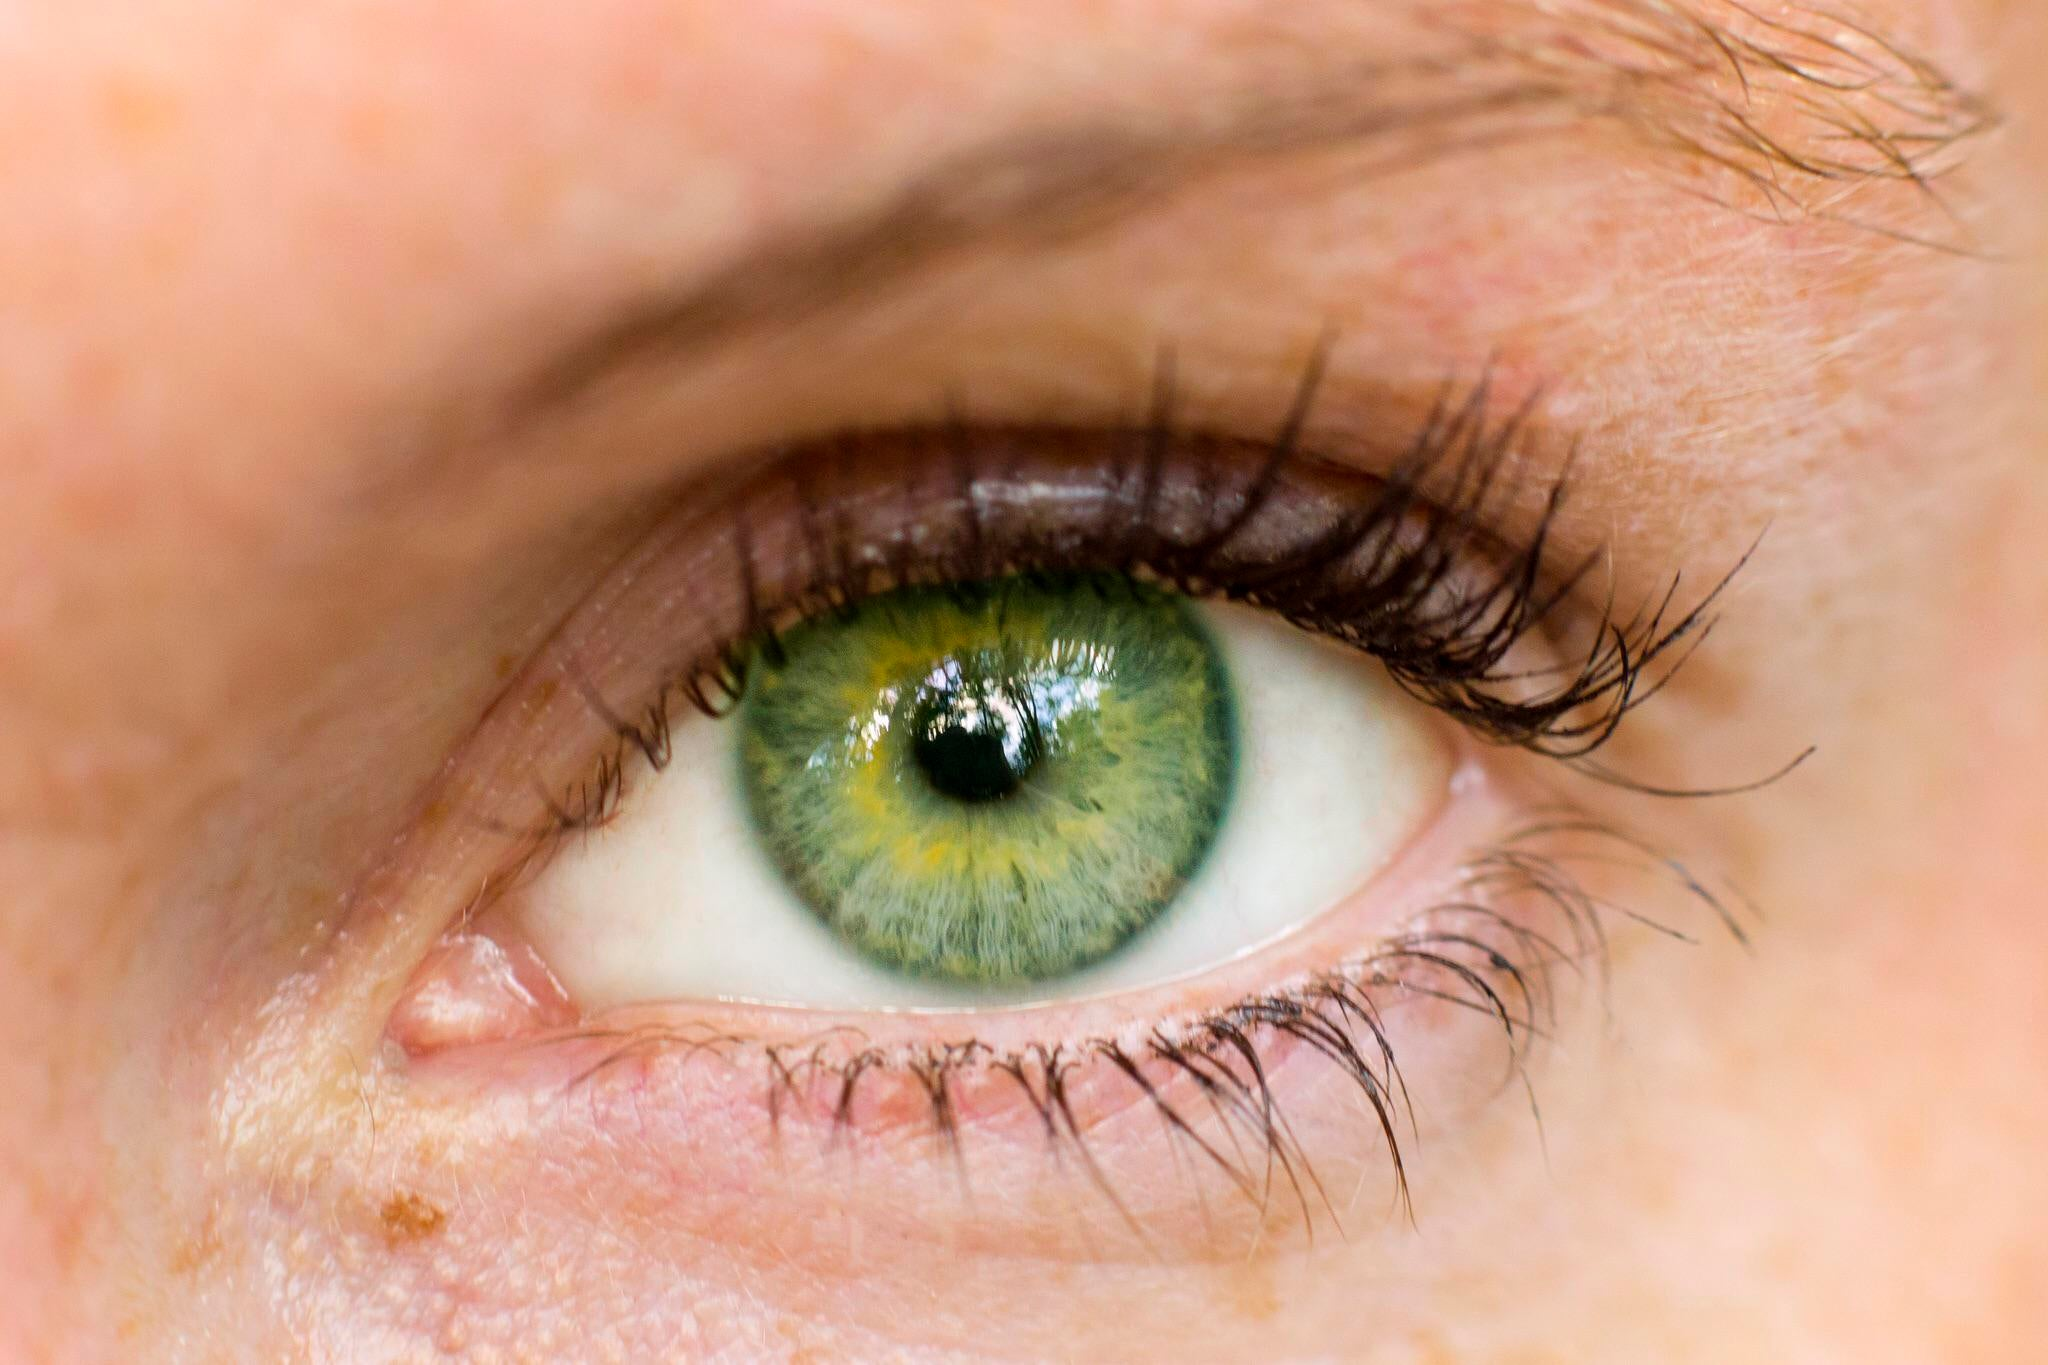 Green-eye-color-1 7 Rarest and Unusual Eye Colors That Looks Unreal